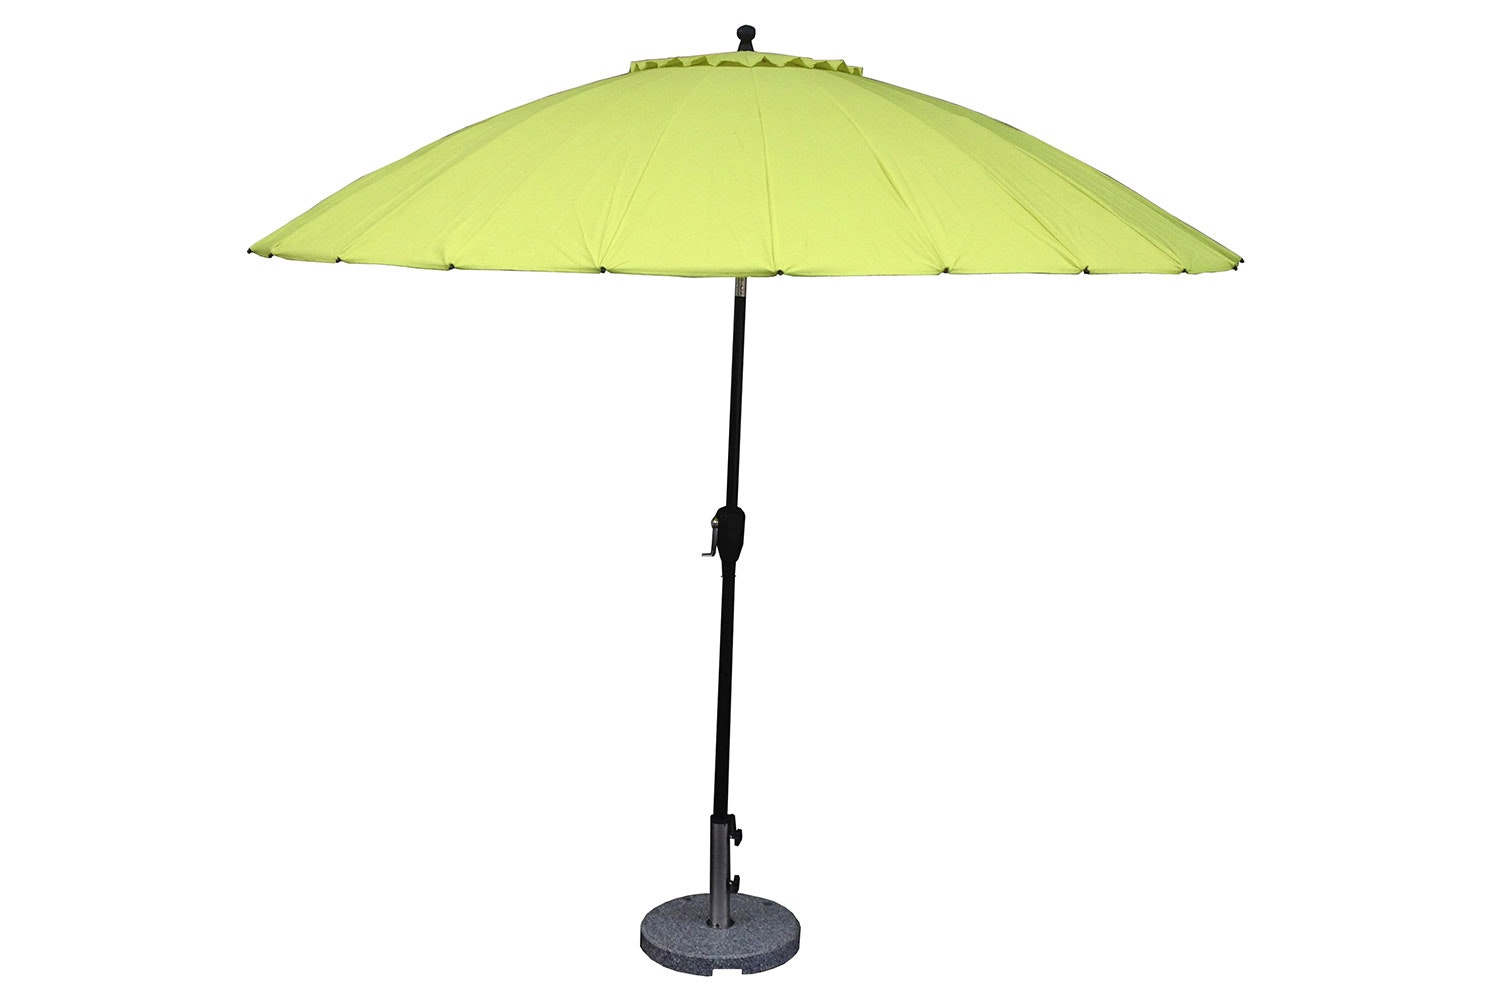 Oriental 2.7m Lime Outdoor Umbrella with Base by Peros